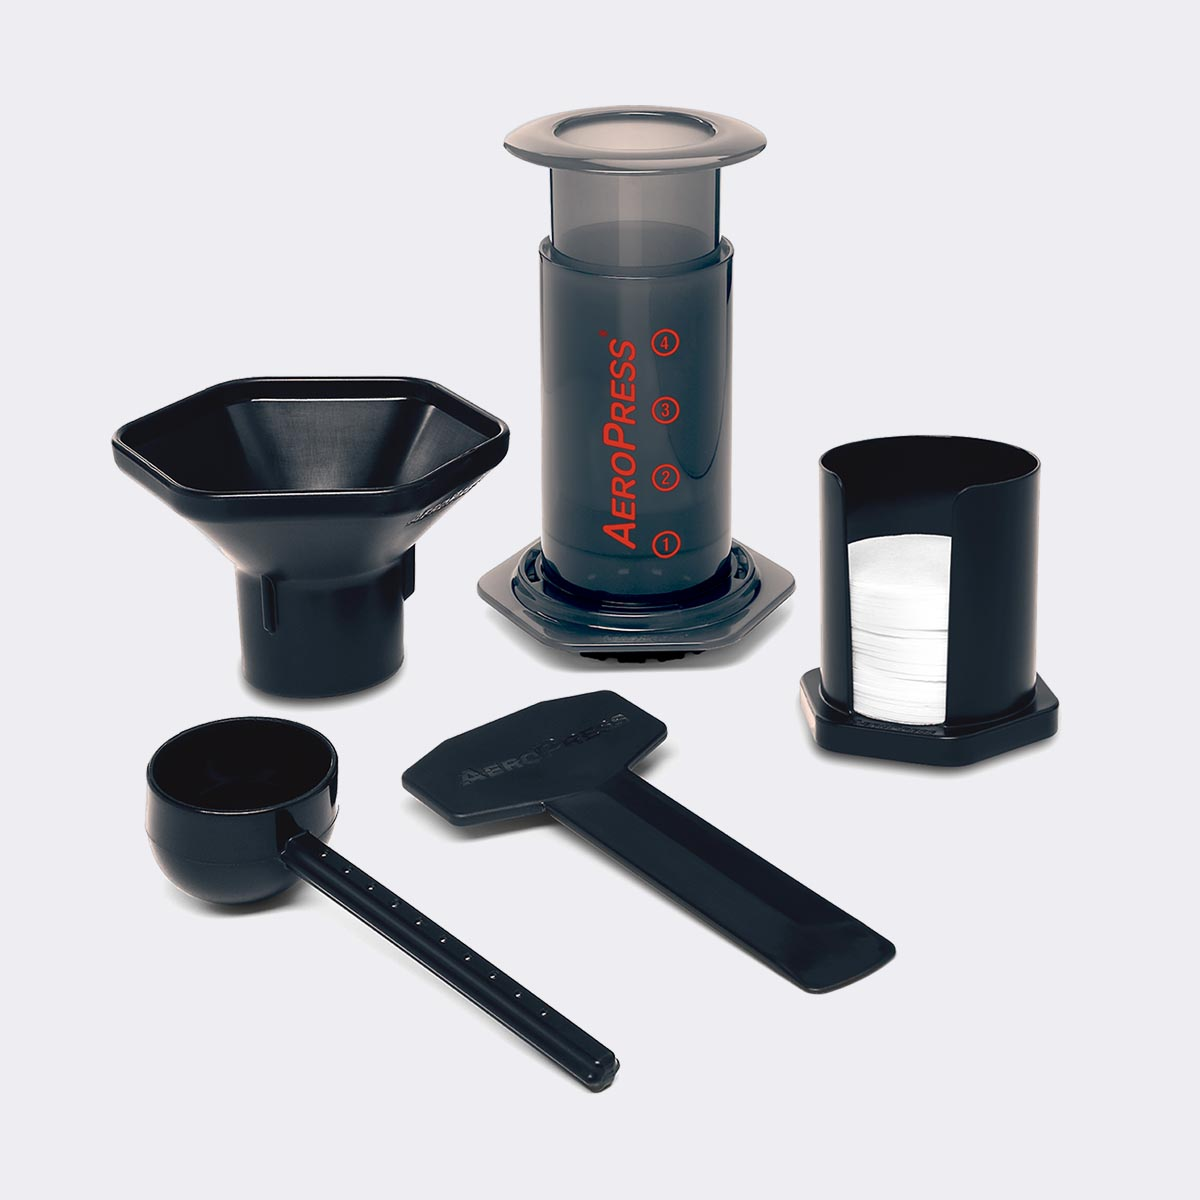 AeroPress + Coffee Beans + Free Shipping